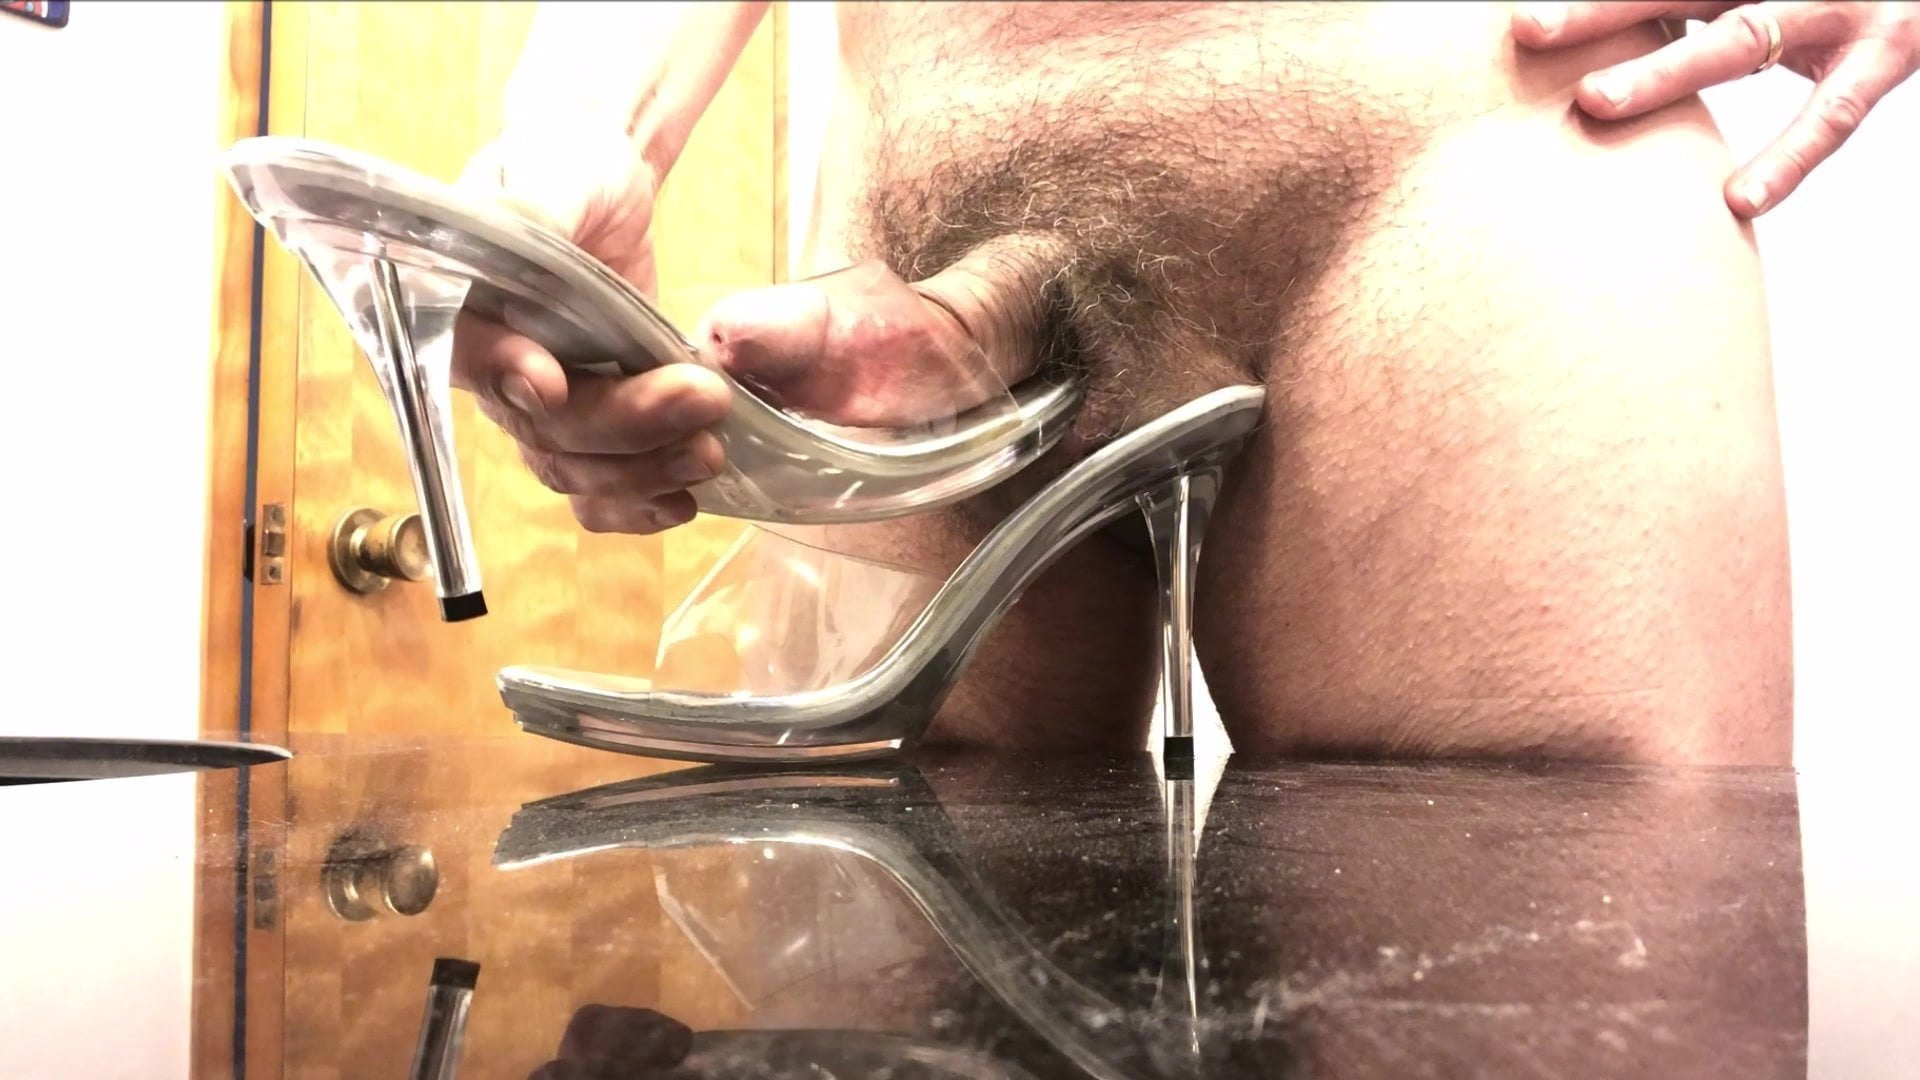 Yummy Acrylic Mules Get Fucked!